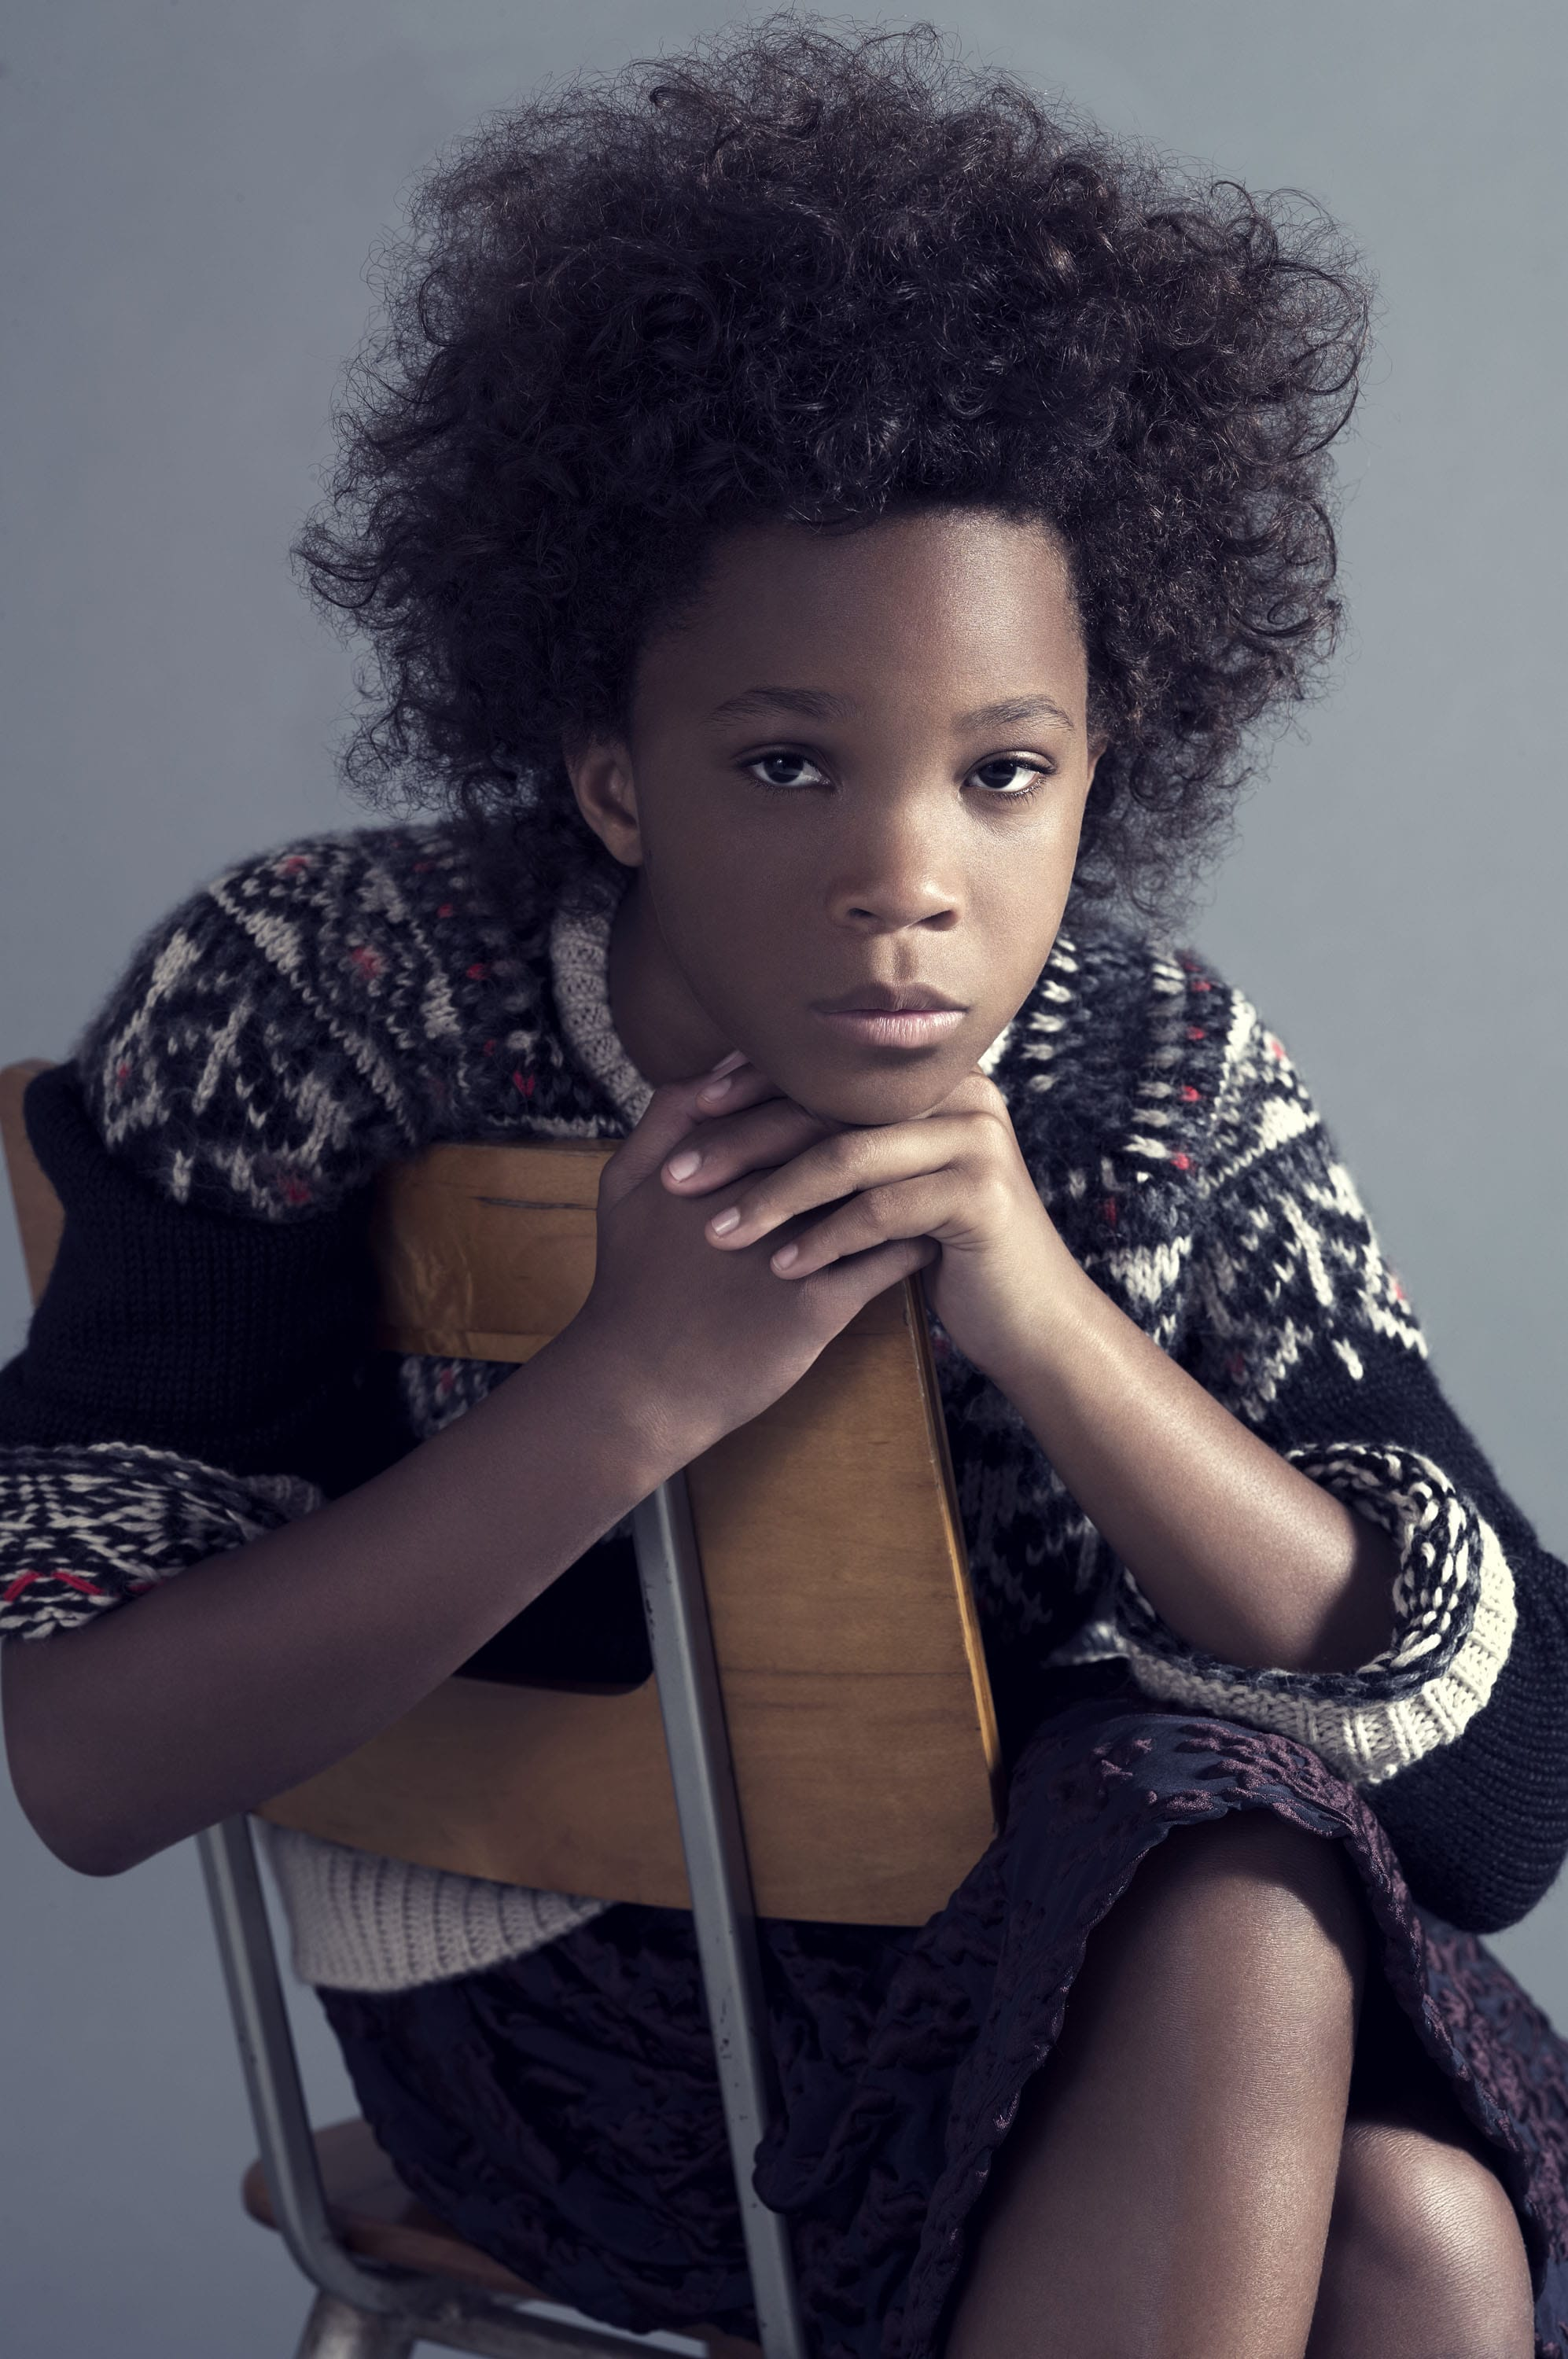 Quvenzhane Wallis For mobile